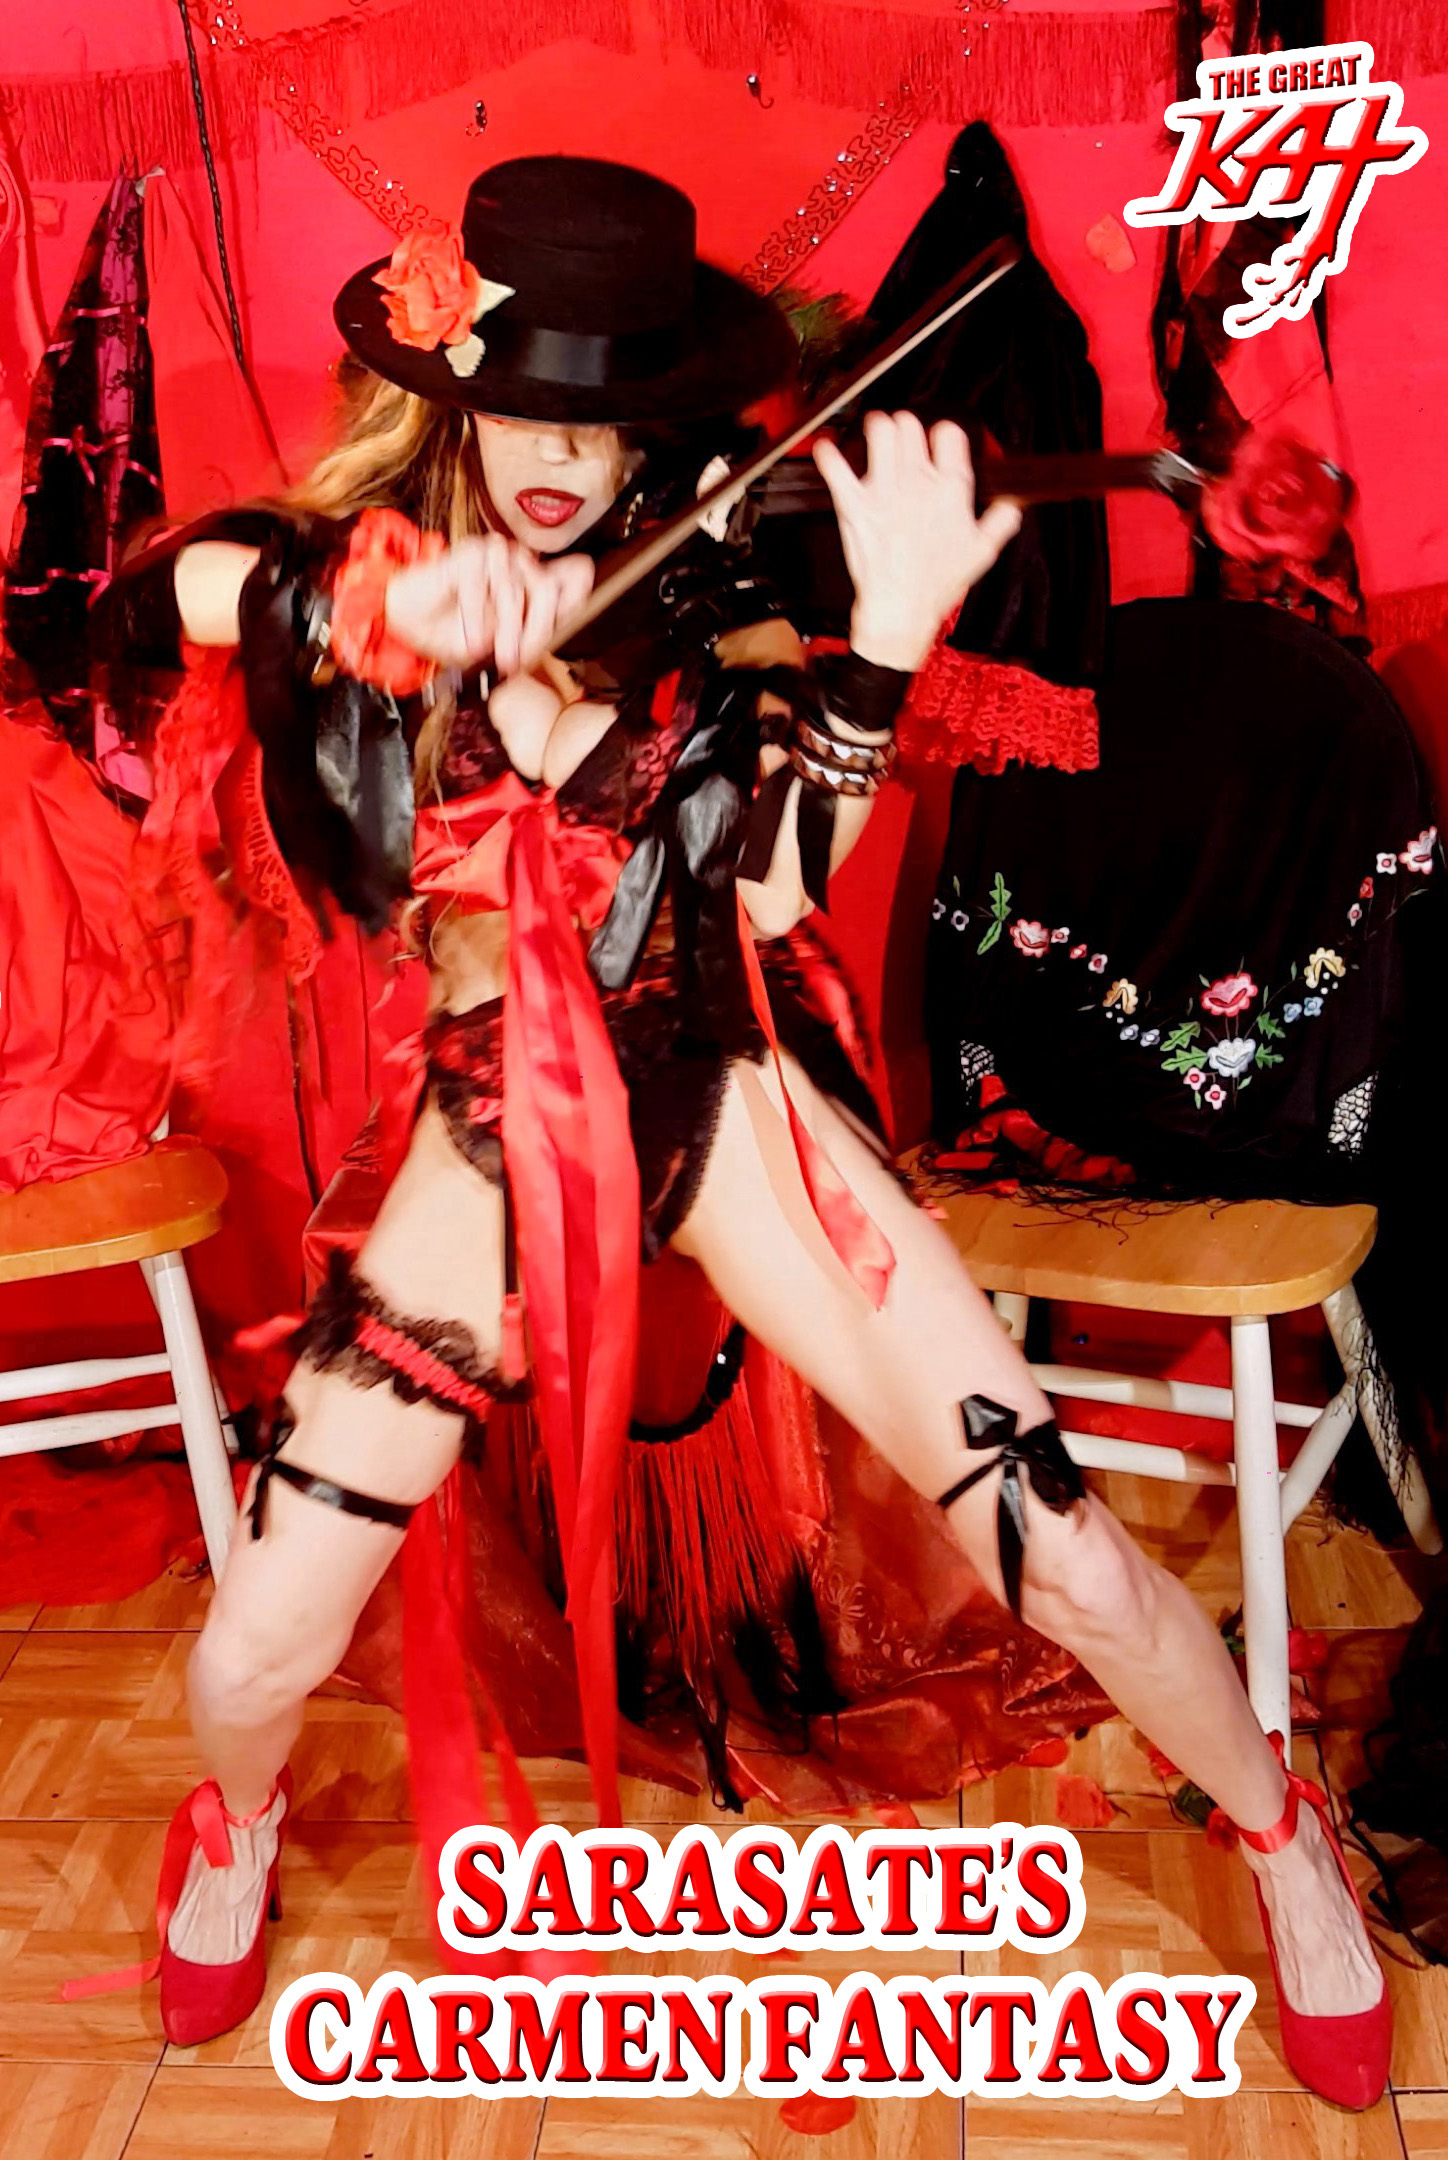 """iTUNES VIDEOS & APPLE MUSIC PREMIERE THE GREAT KAT'S NEW SARASATE'S """"CARMEN FANTASY"""" MUSIC VIDEO! WATCH at https://itunes.apple.com/us/music-video/sarasates-carmen-fantasy/id1278367150  Ole! Sarasate's Carmen Fantasy stars Shred Senorita The Great Kat's stunning Guitar & Violin virtuosity, along with Carmen & Don Jose dancing an Argentine Tango. Matadors, bullfighters, masked gimps and the world's fastest guitar/violin shredder, The Great Kat make the ultimate over-the-top, insane Hard Rock/Classical music video! Watch now: https://itunes.apple.com/us/music-video/sarasates-carmen-fantasy/id1278367150"""